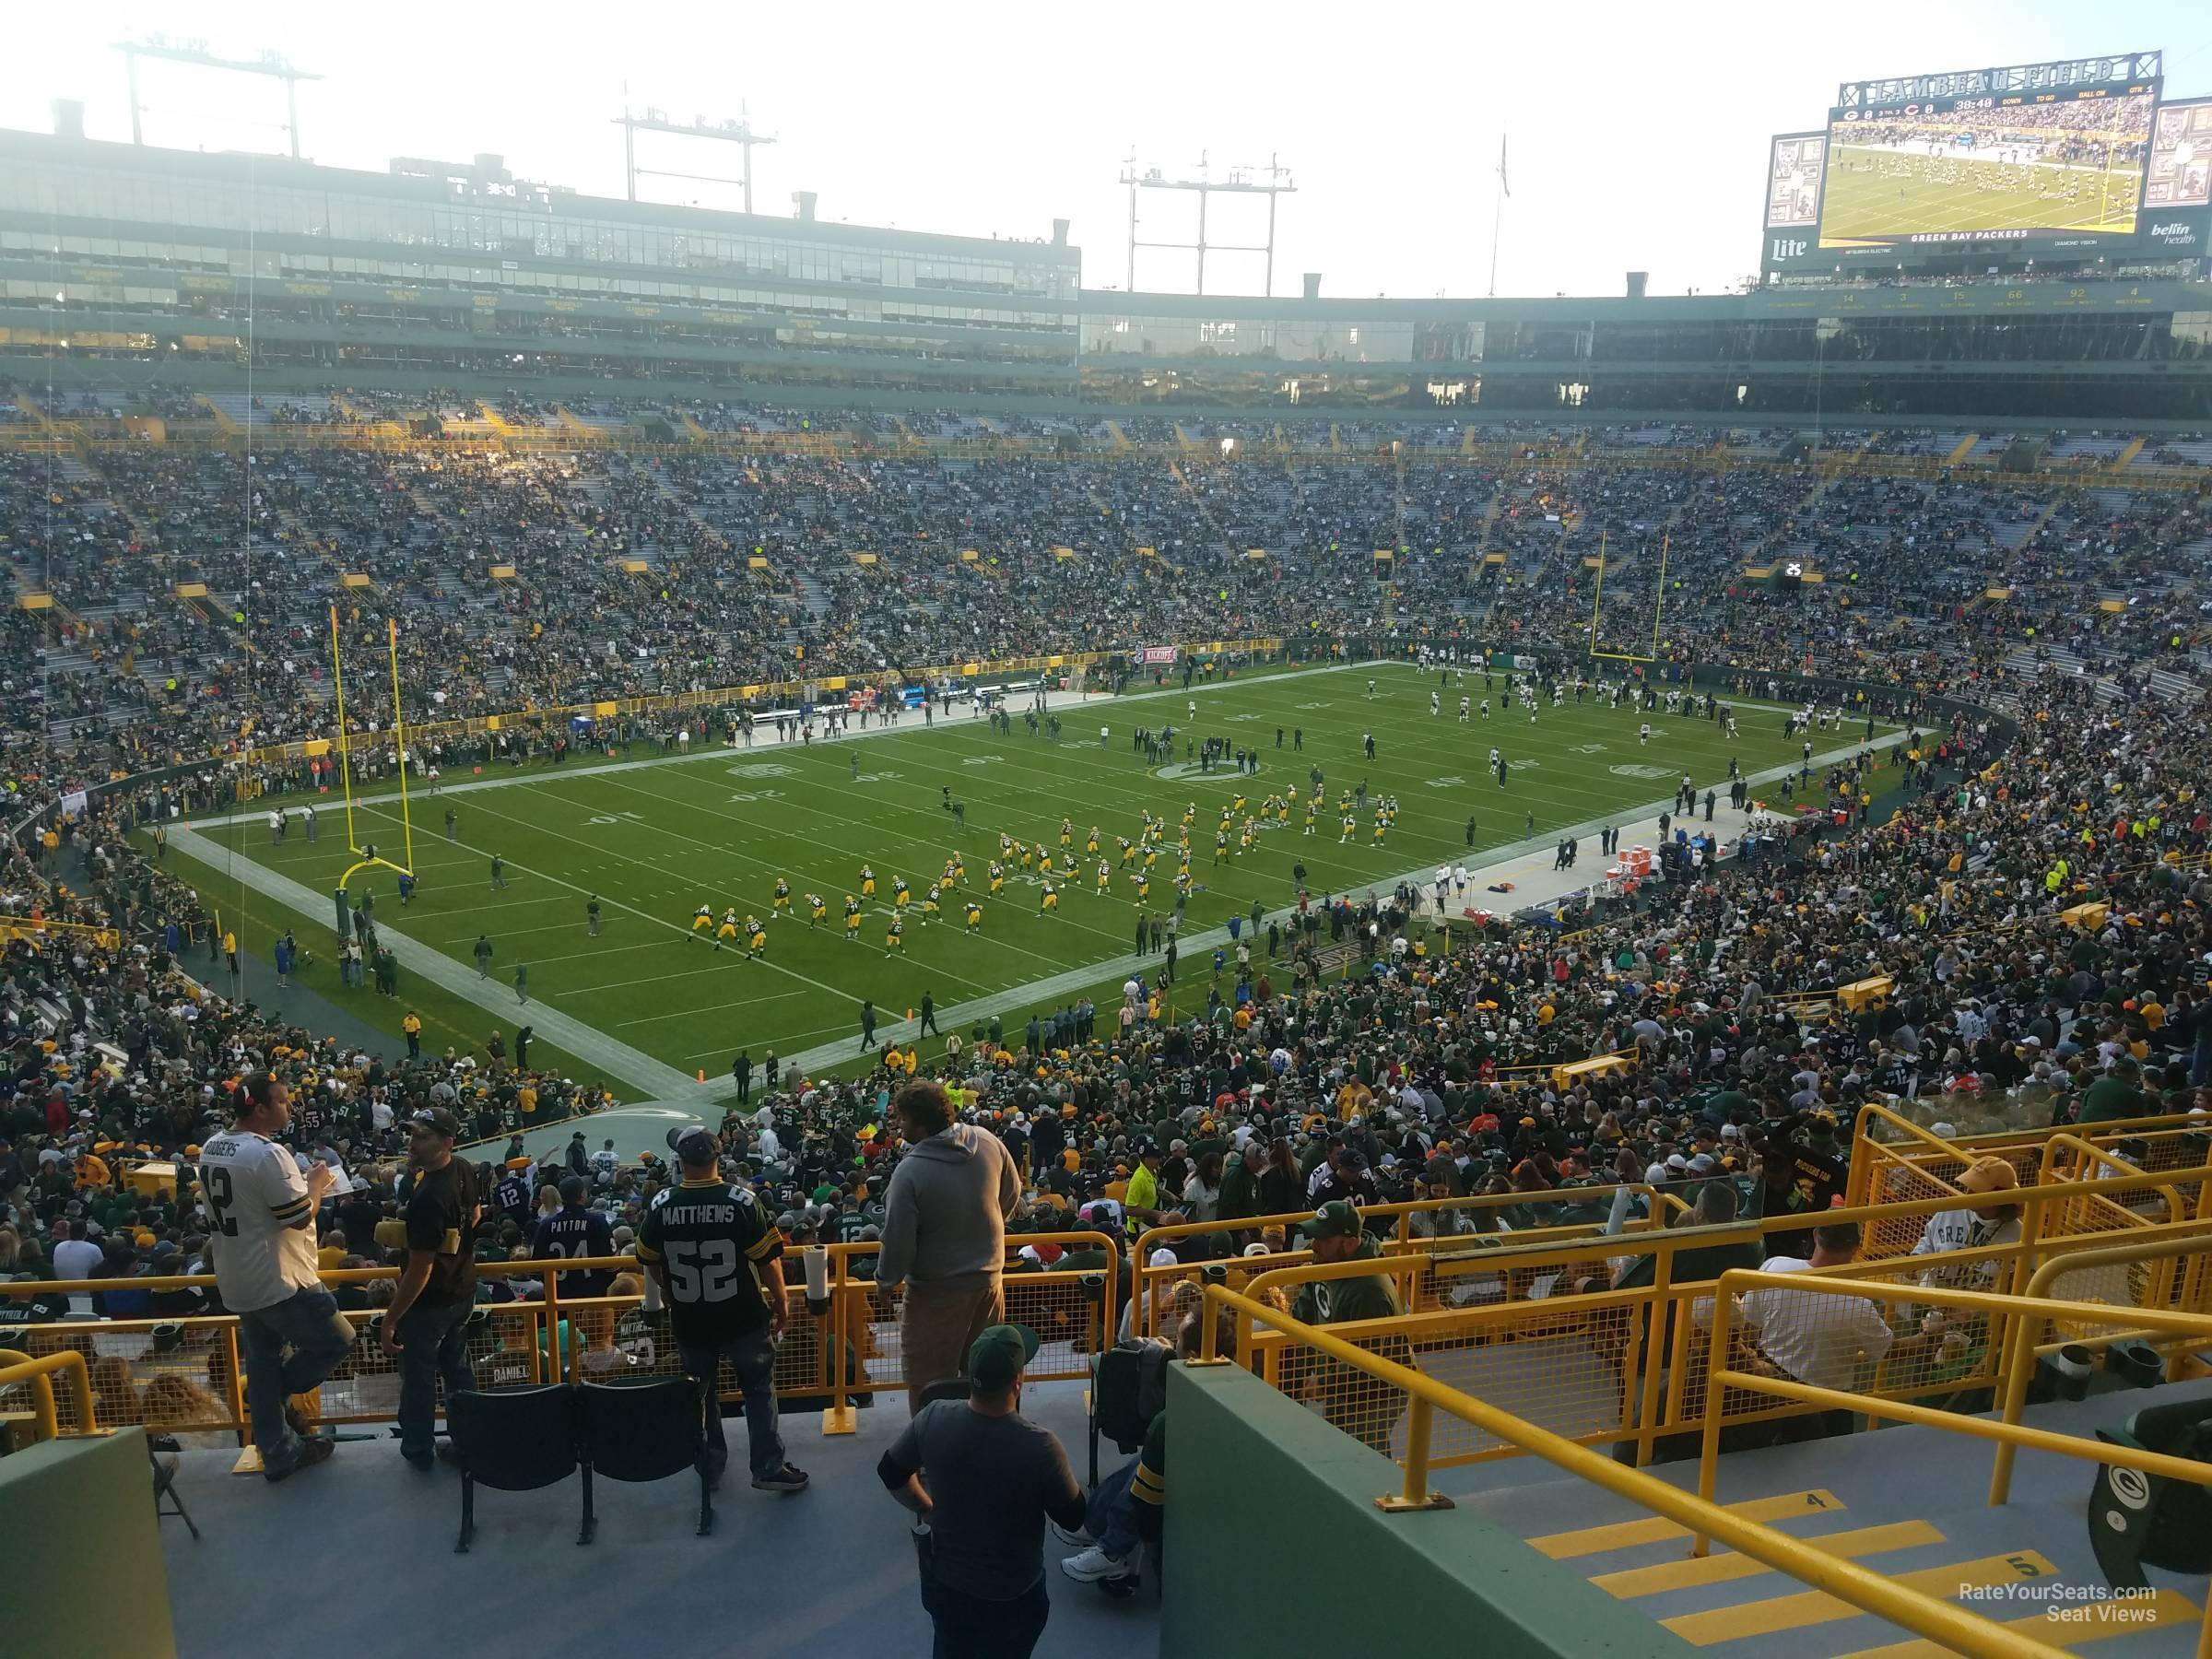 Lambeau Field Section 433 - RateYourSeats.com